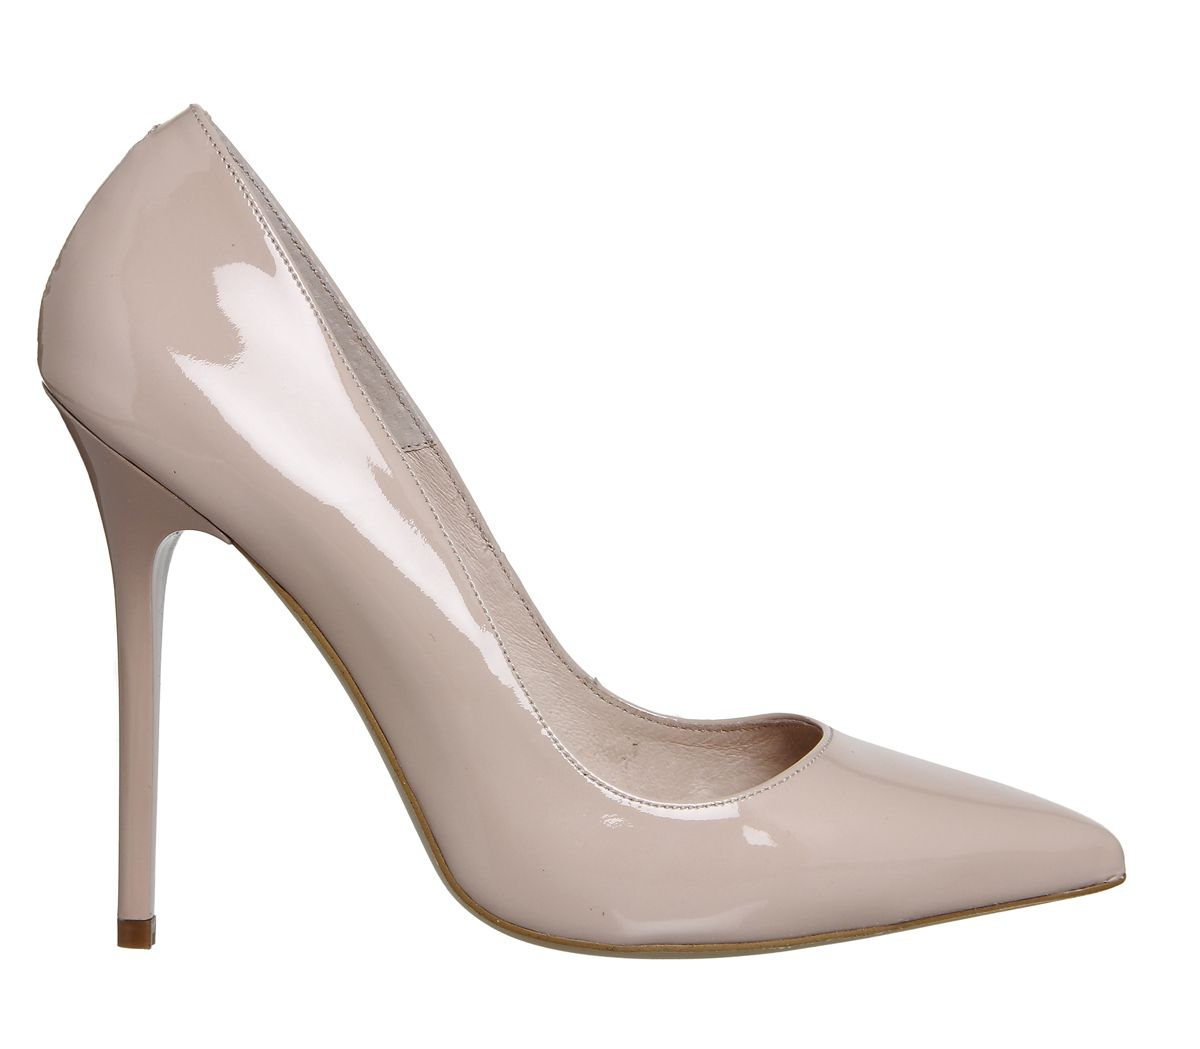 8d576c9535503 Light Nude Patent Leather Office On To Point Court Heels £65 11cm heel,  leather